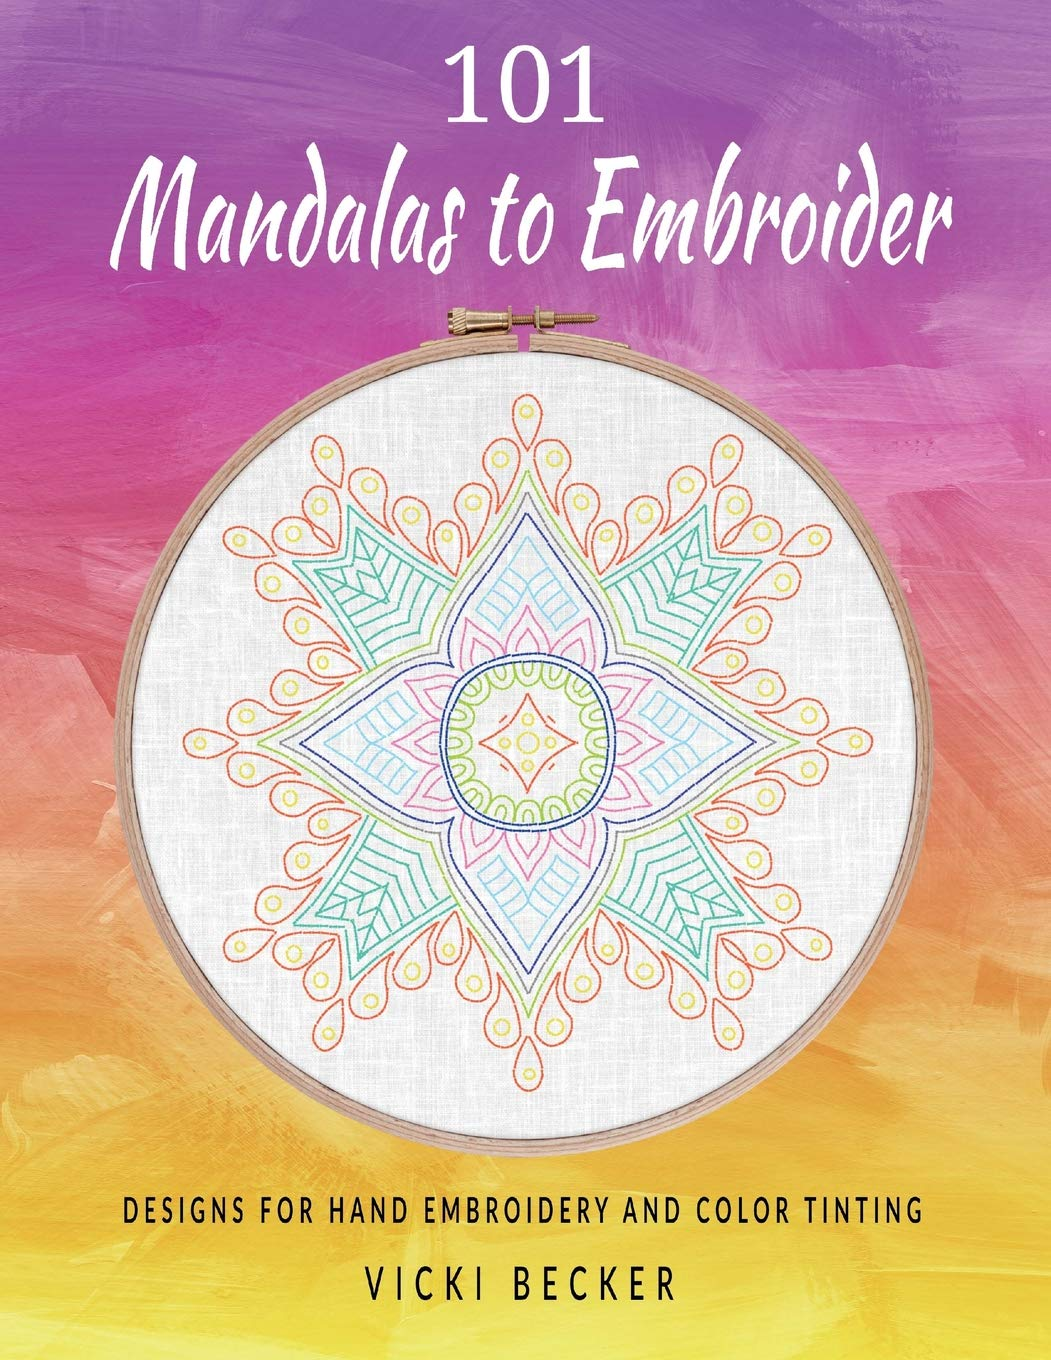 101 Mandalas To Embroider Designs For Hand Embroidery And Color Tinting Hand Embroidery Pattern Collection Volume 1 Becker Vicki 9781727303179 Amazon Com Books